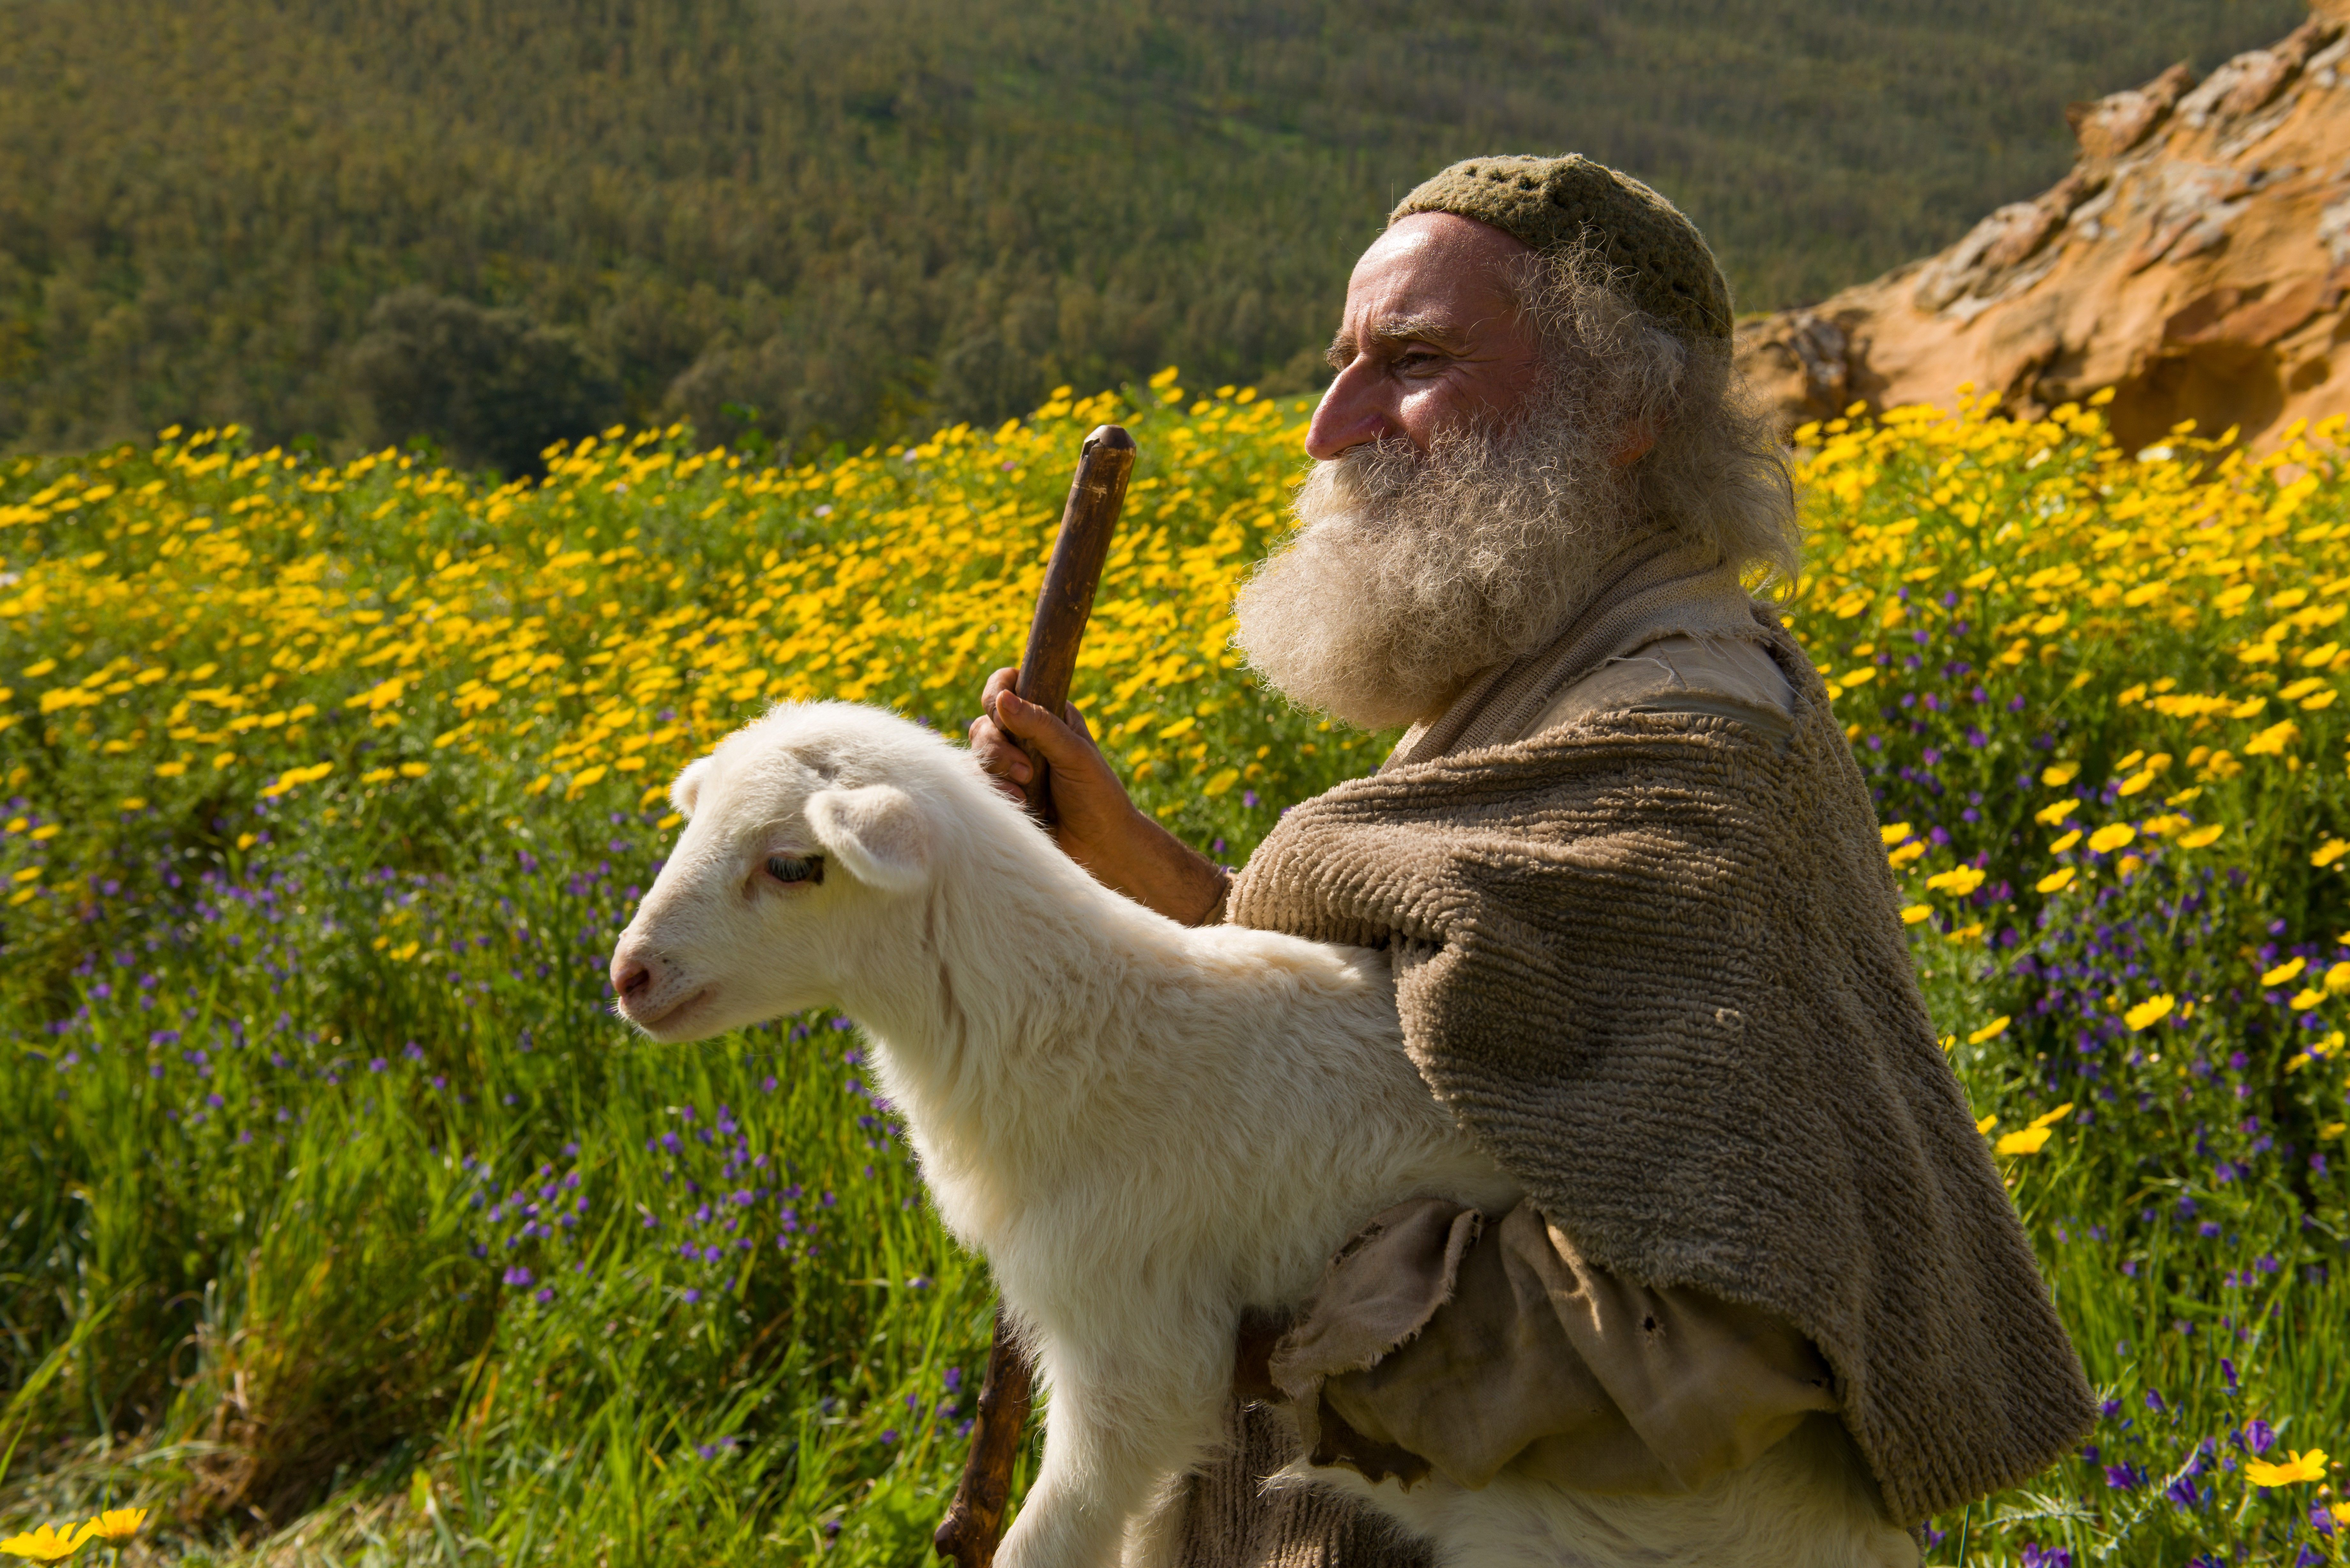 The shepherd goes and finds his lost sheep.